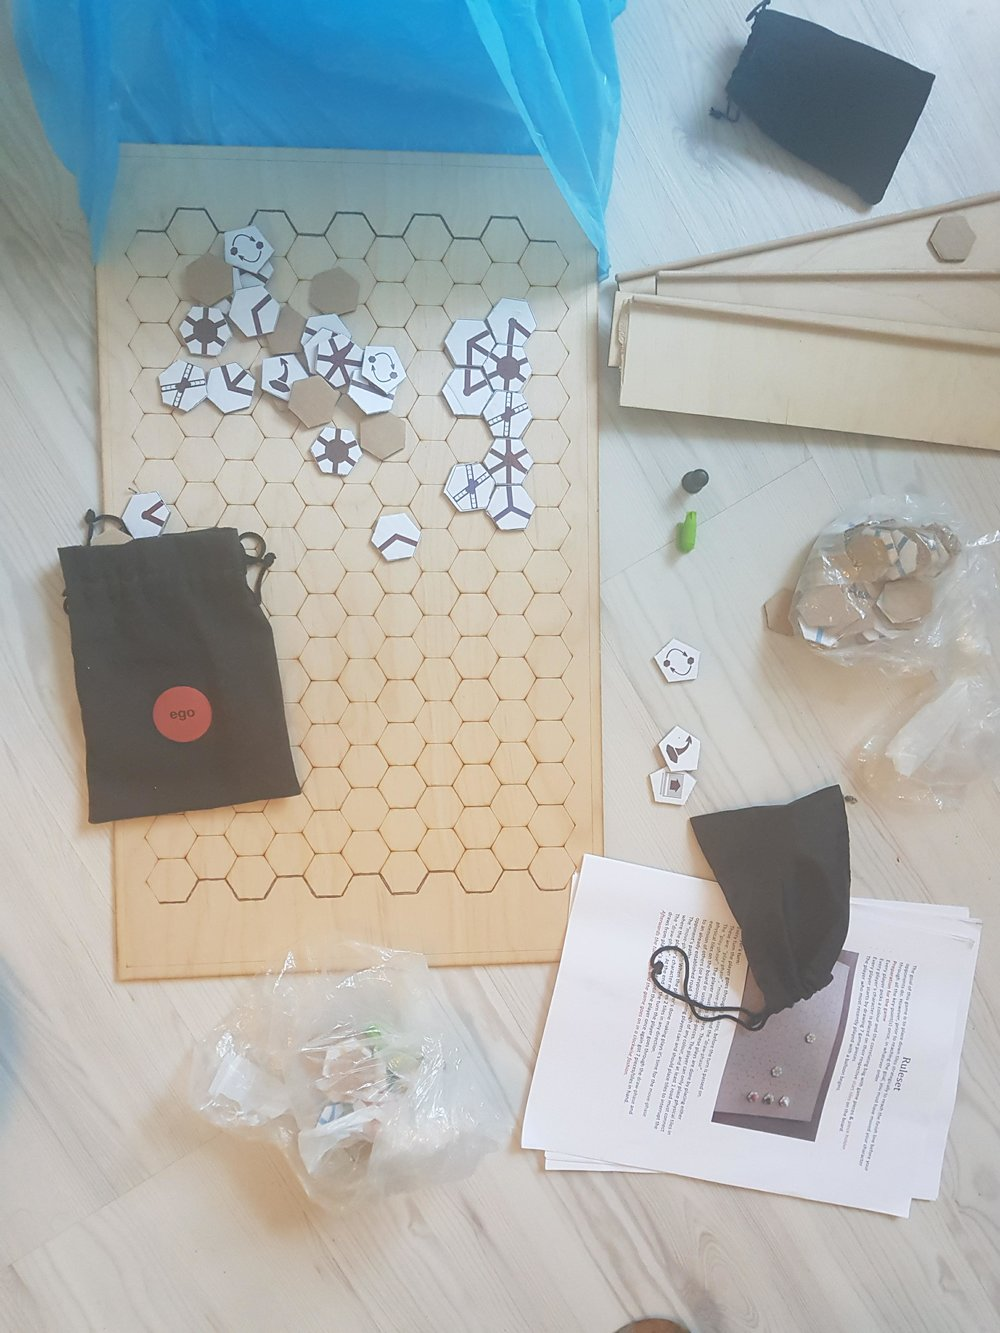 All the content related to the newest prototype